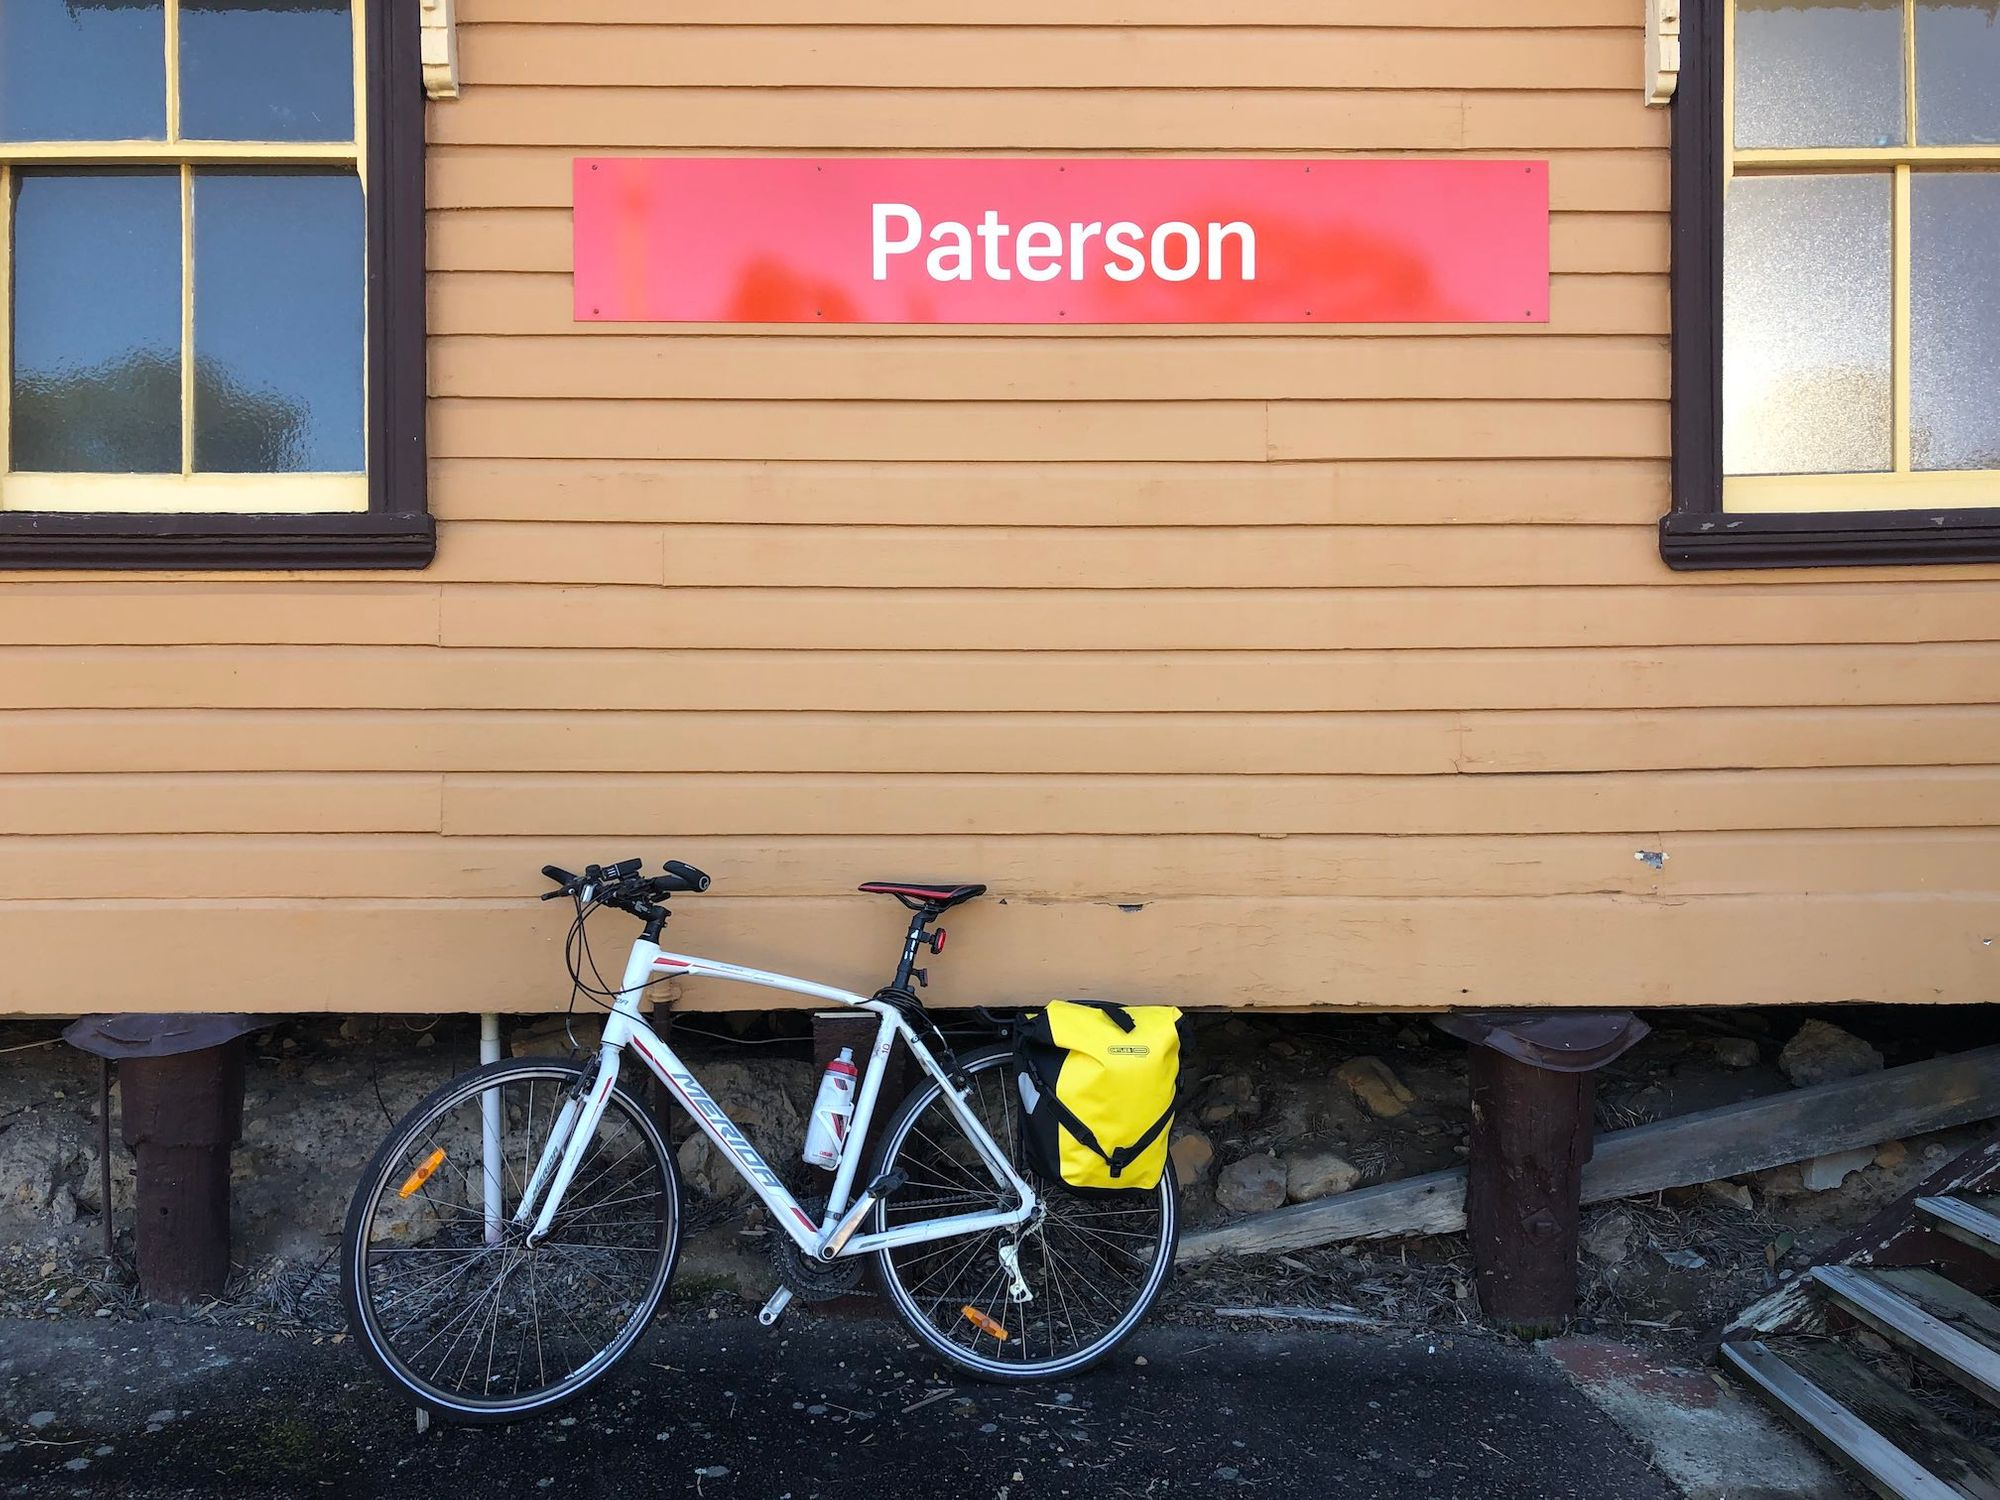 "Bicycle with panniers, in front of wooden train station building, labelled ""Paterson"""